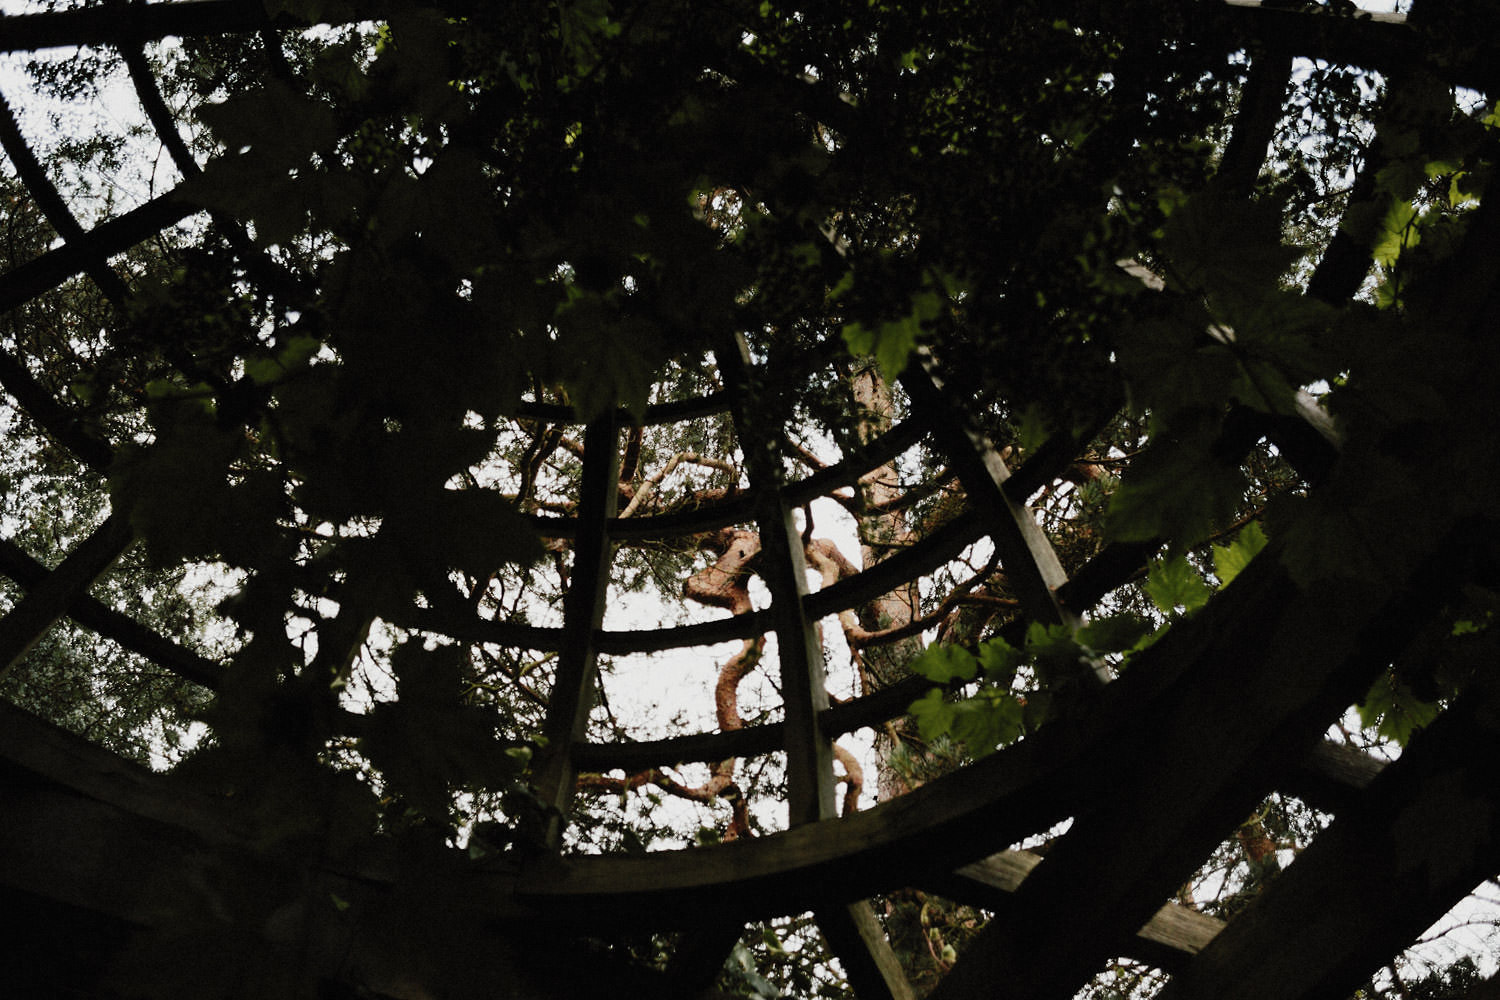 070-the-hill-garden-and-pergola-in-london.jpg